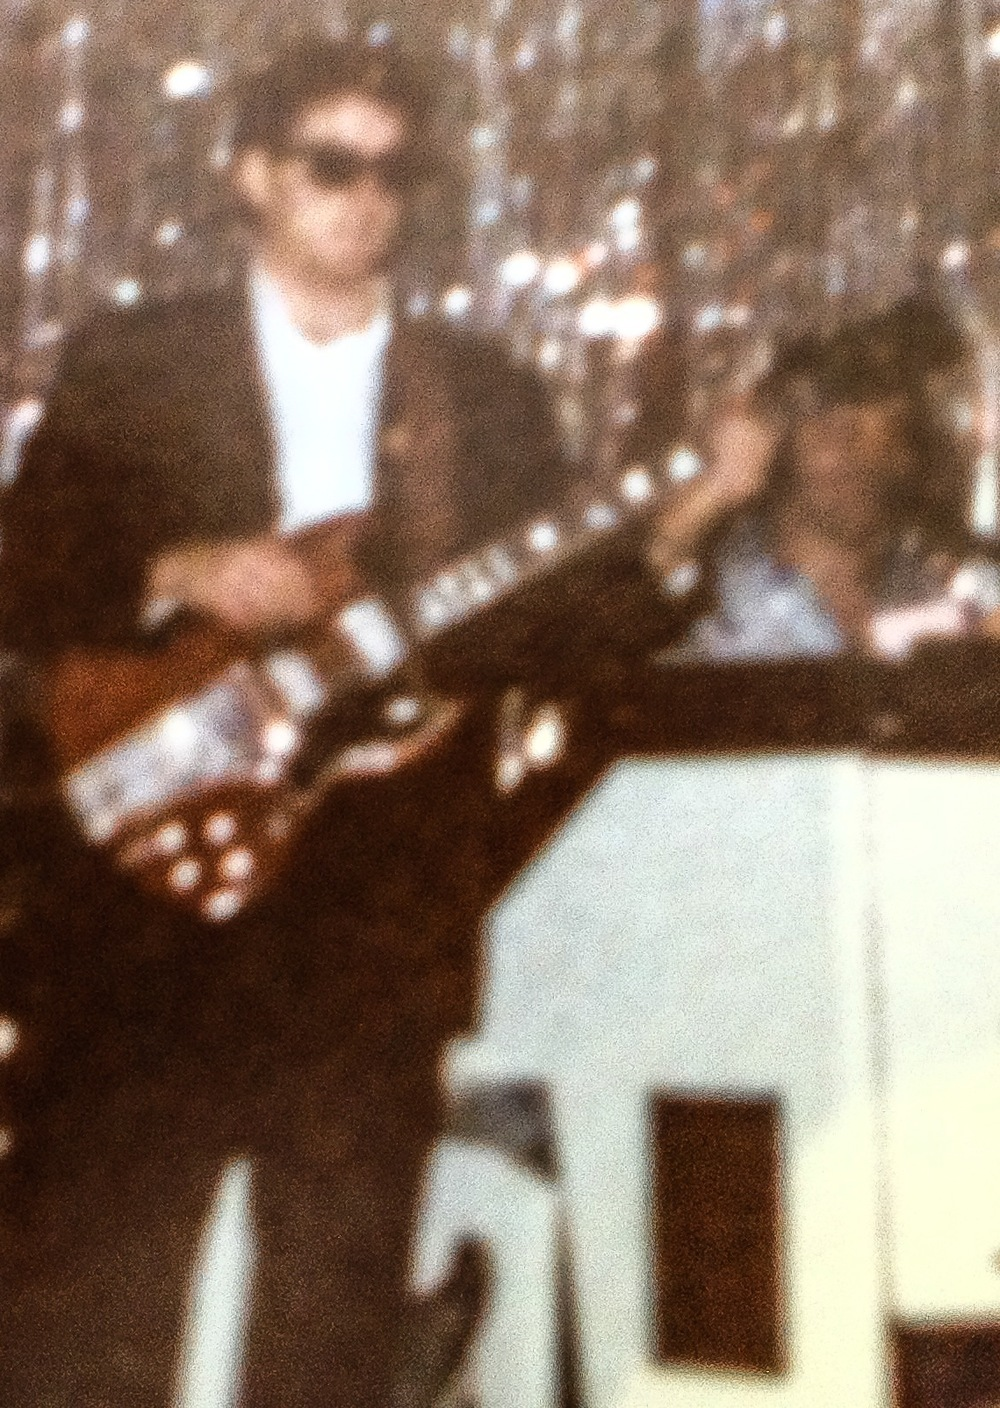 gigging in high school at the us navy officer's club in orlando, florida - age 16